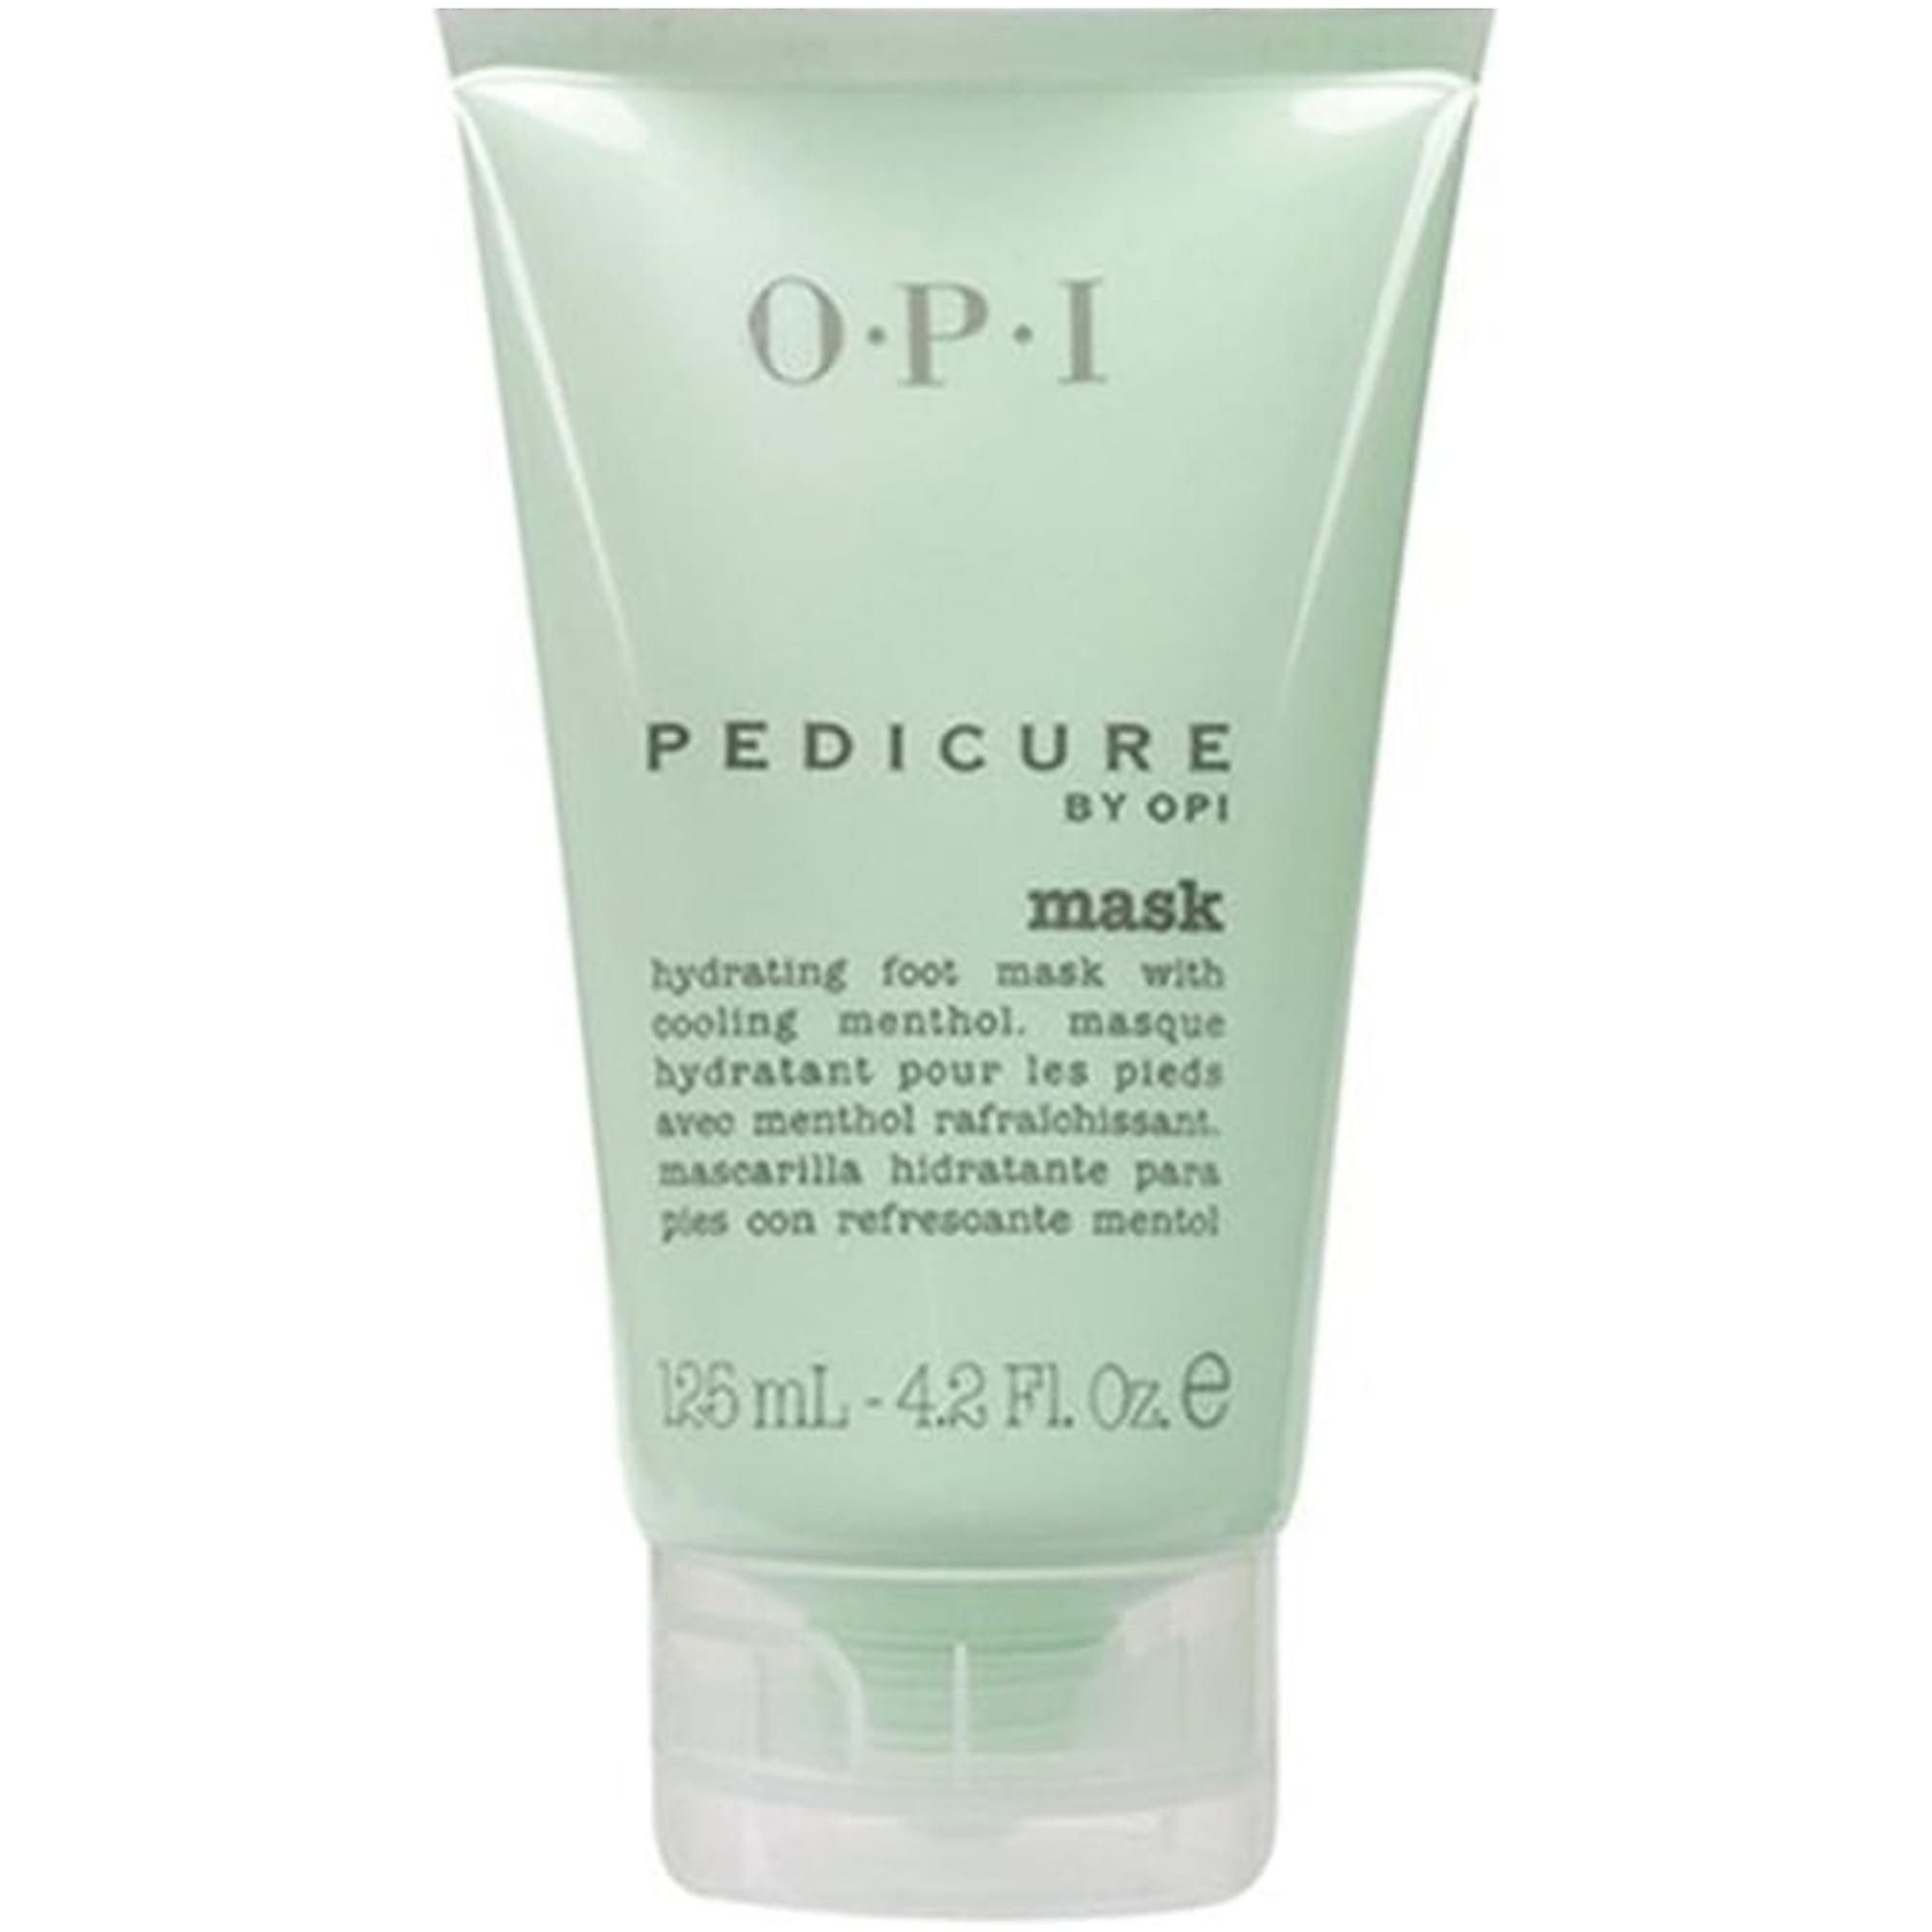 PedicureFoot 125ml Mask Mask Opi PedicureFoot Opi NPZ8n0wkXO